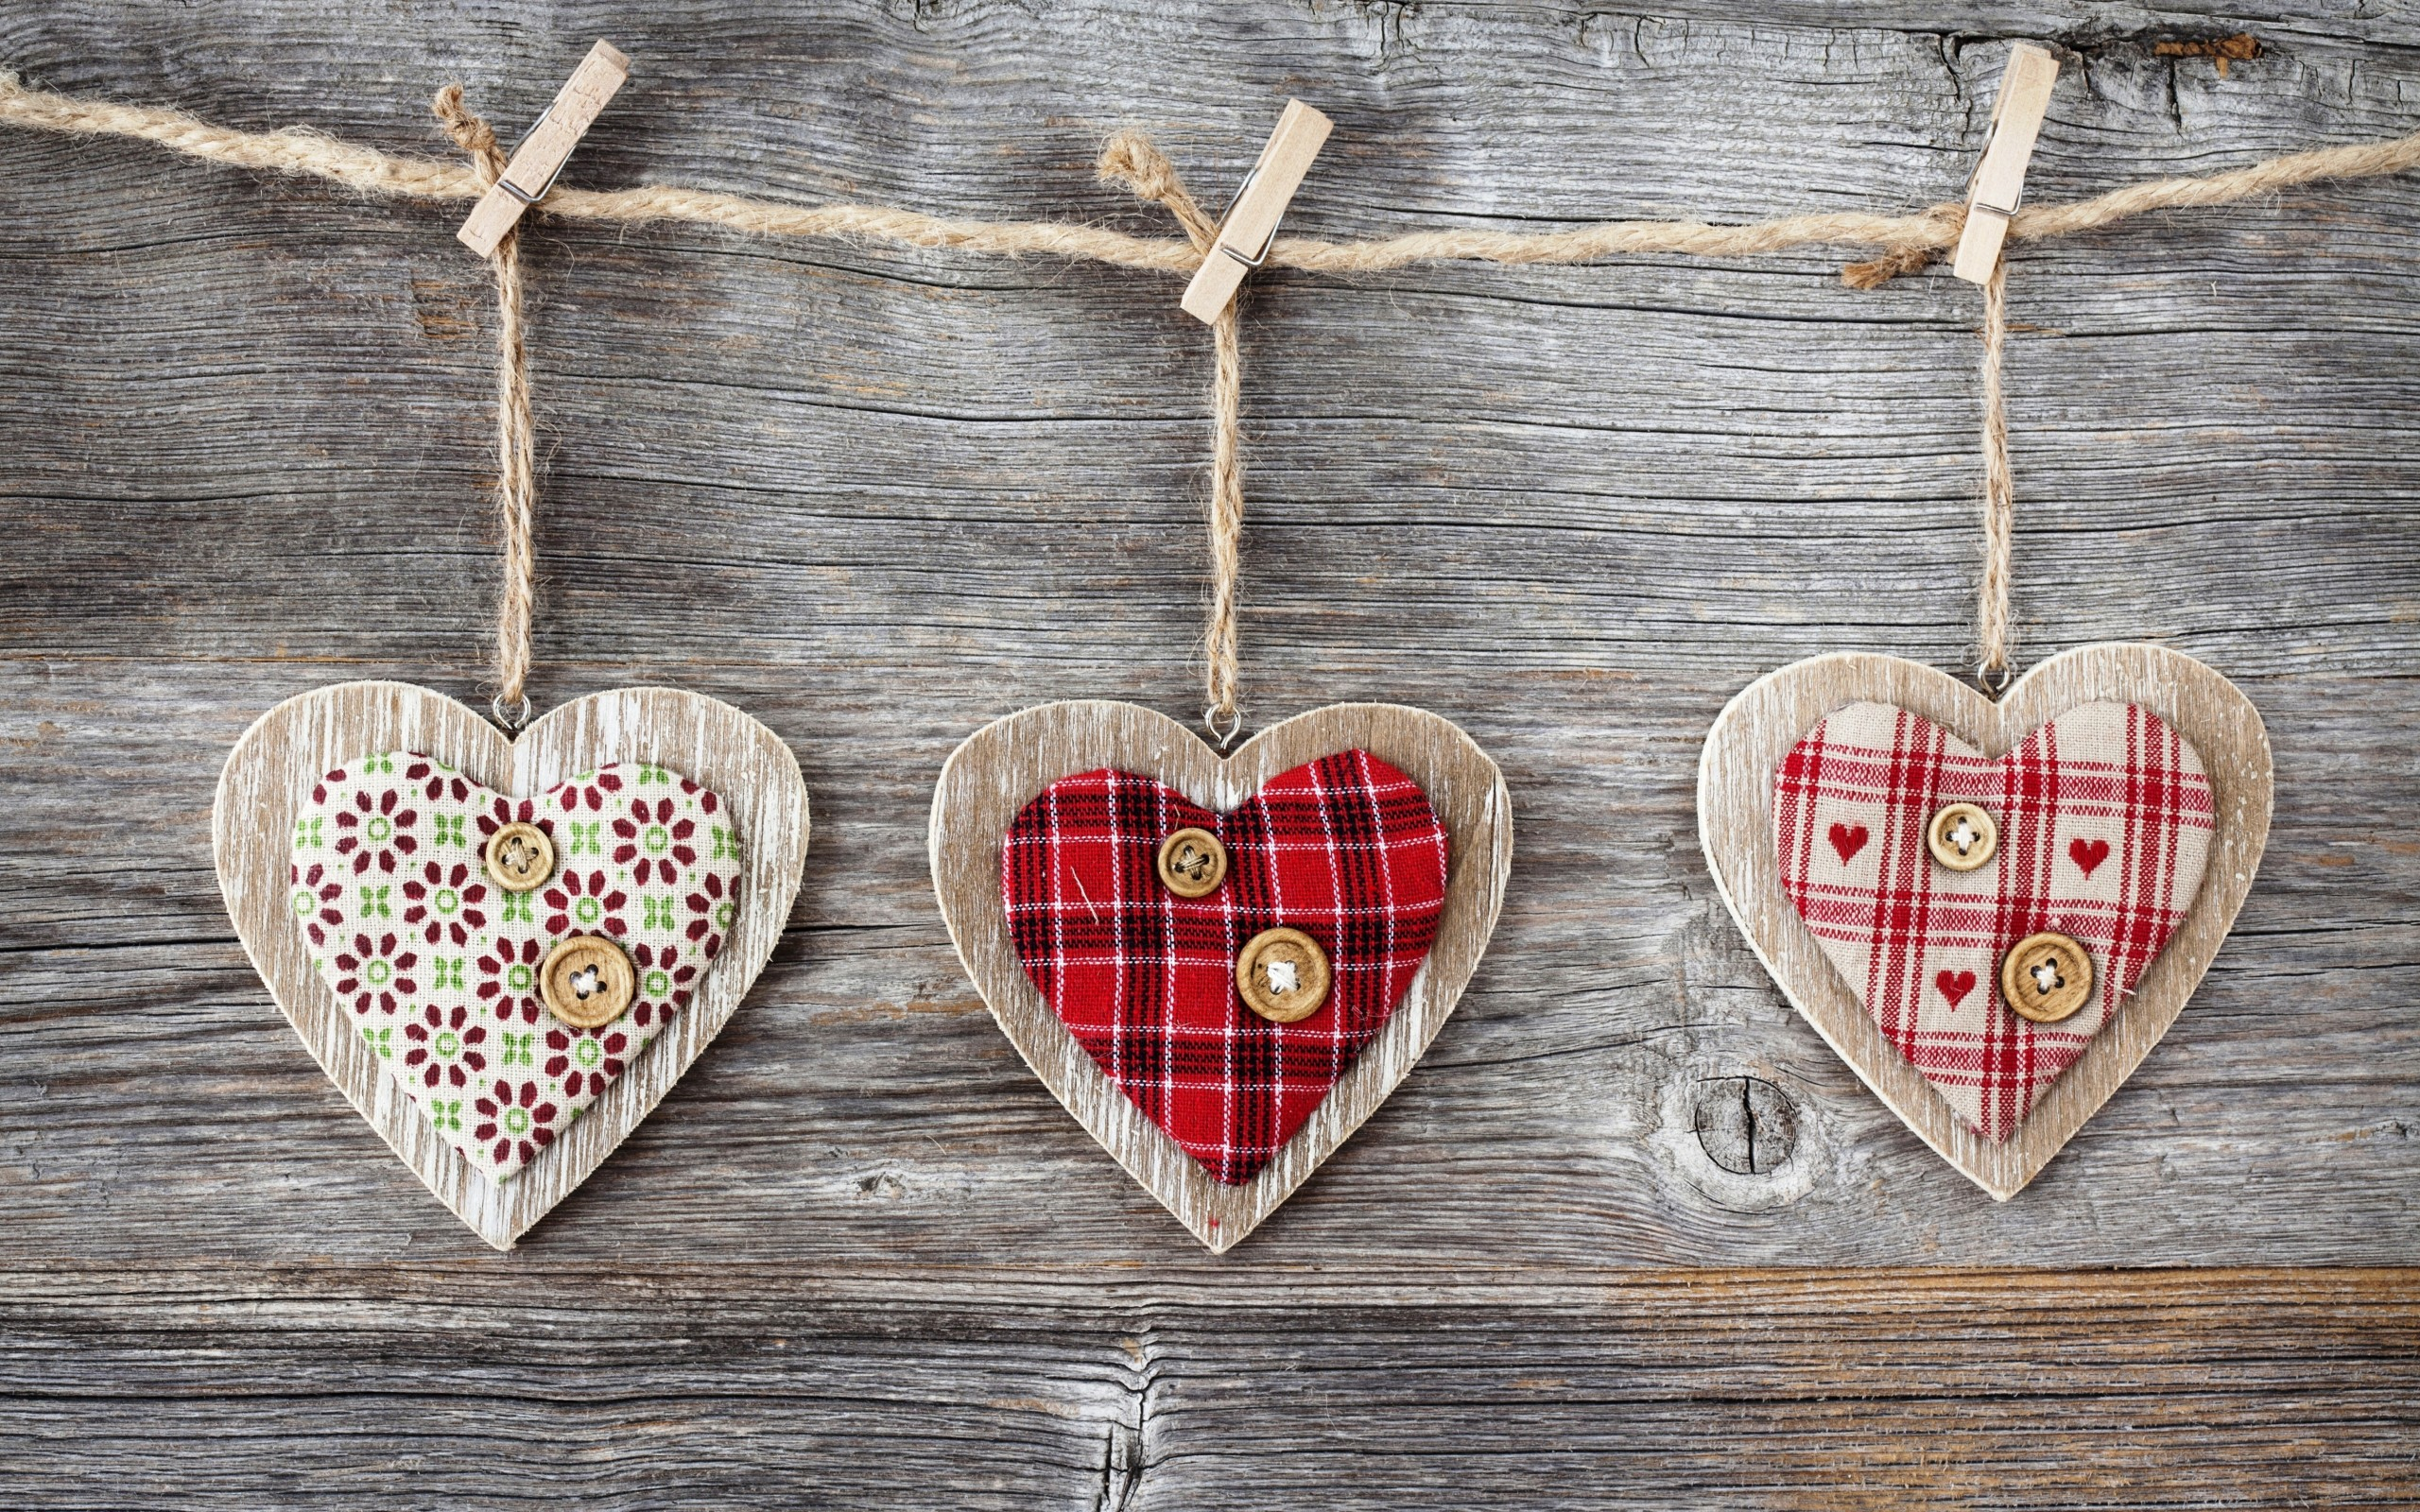 Heart Over A Wooden Background